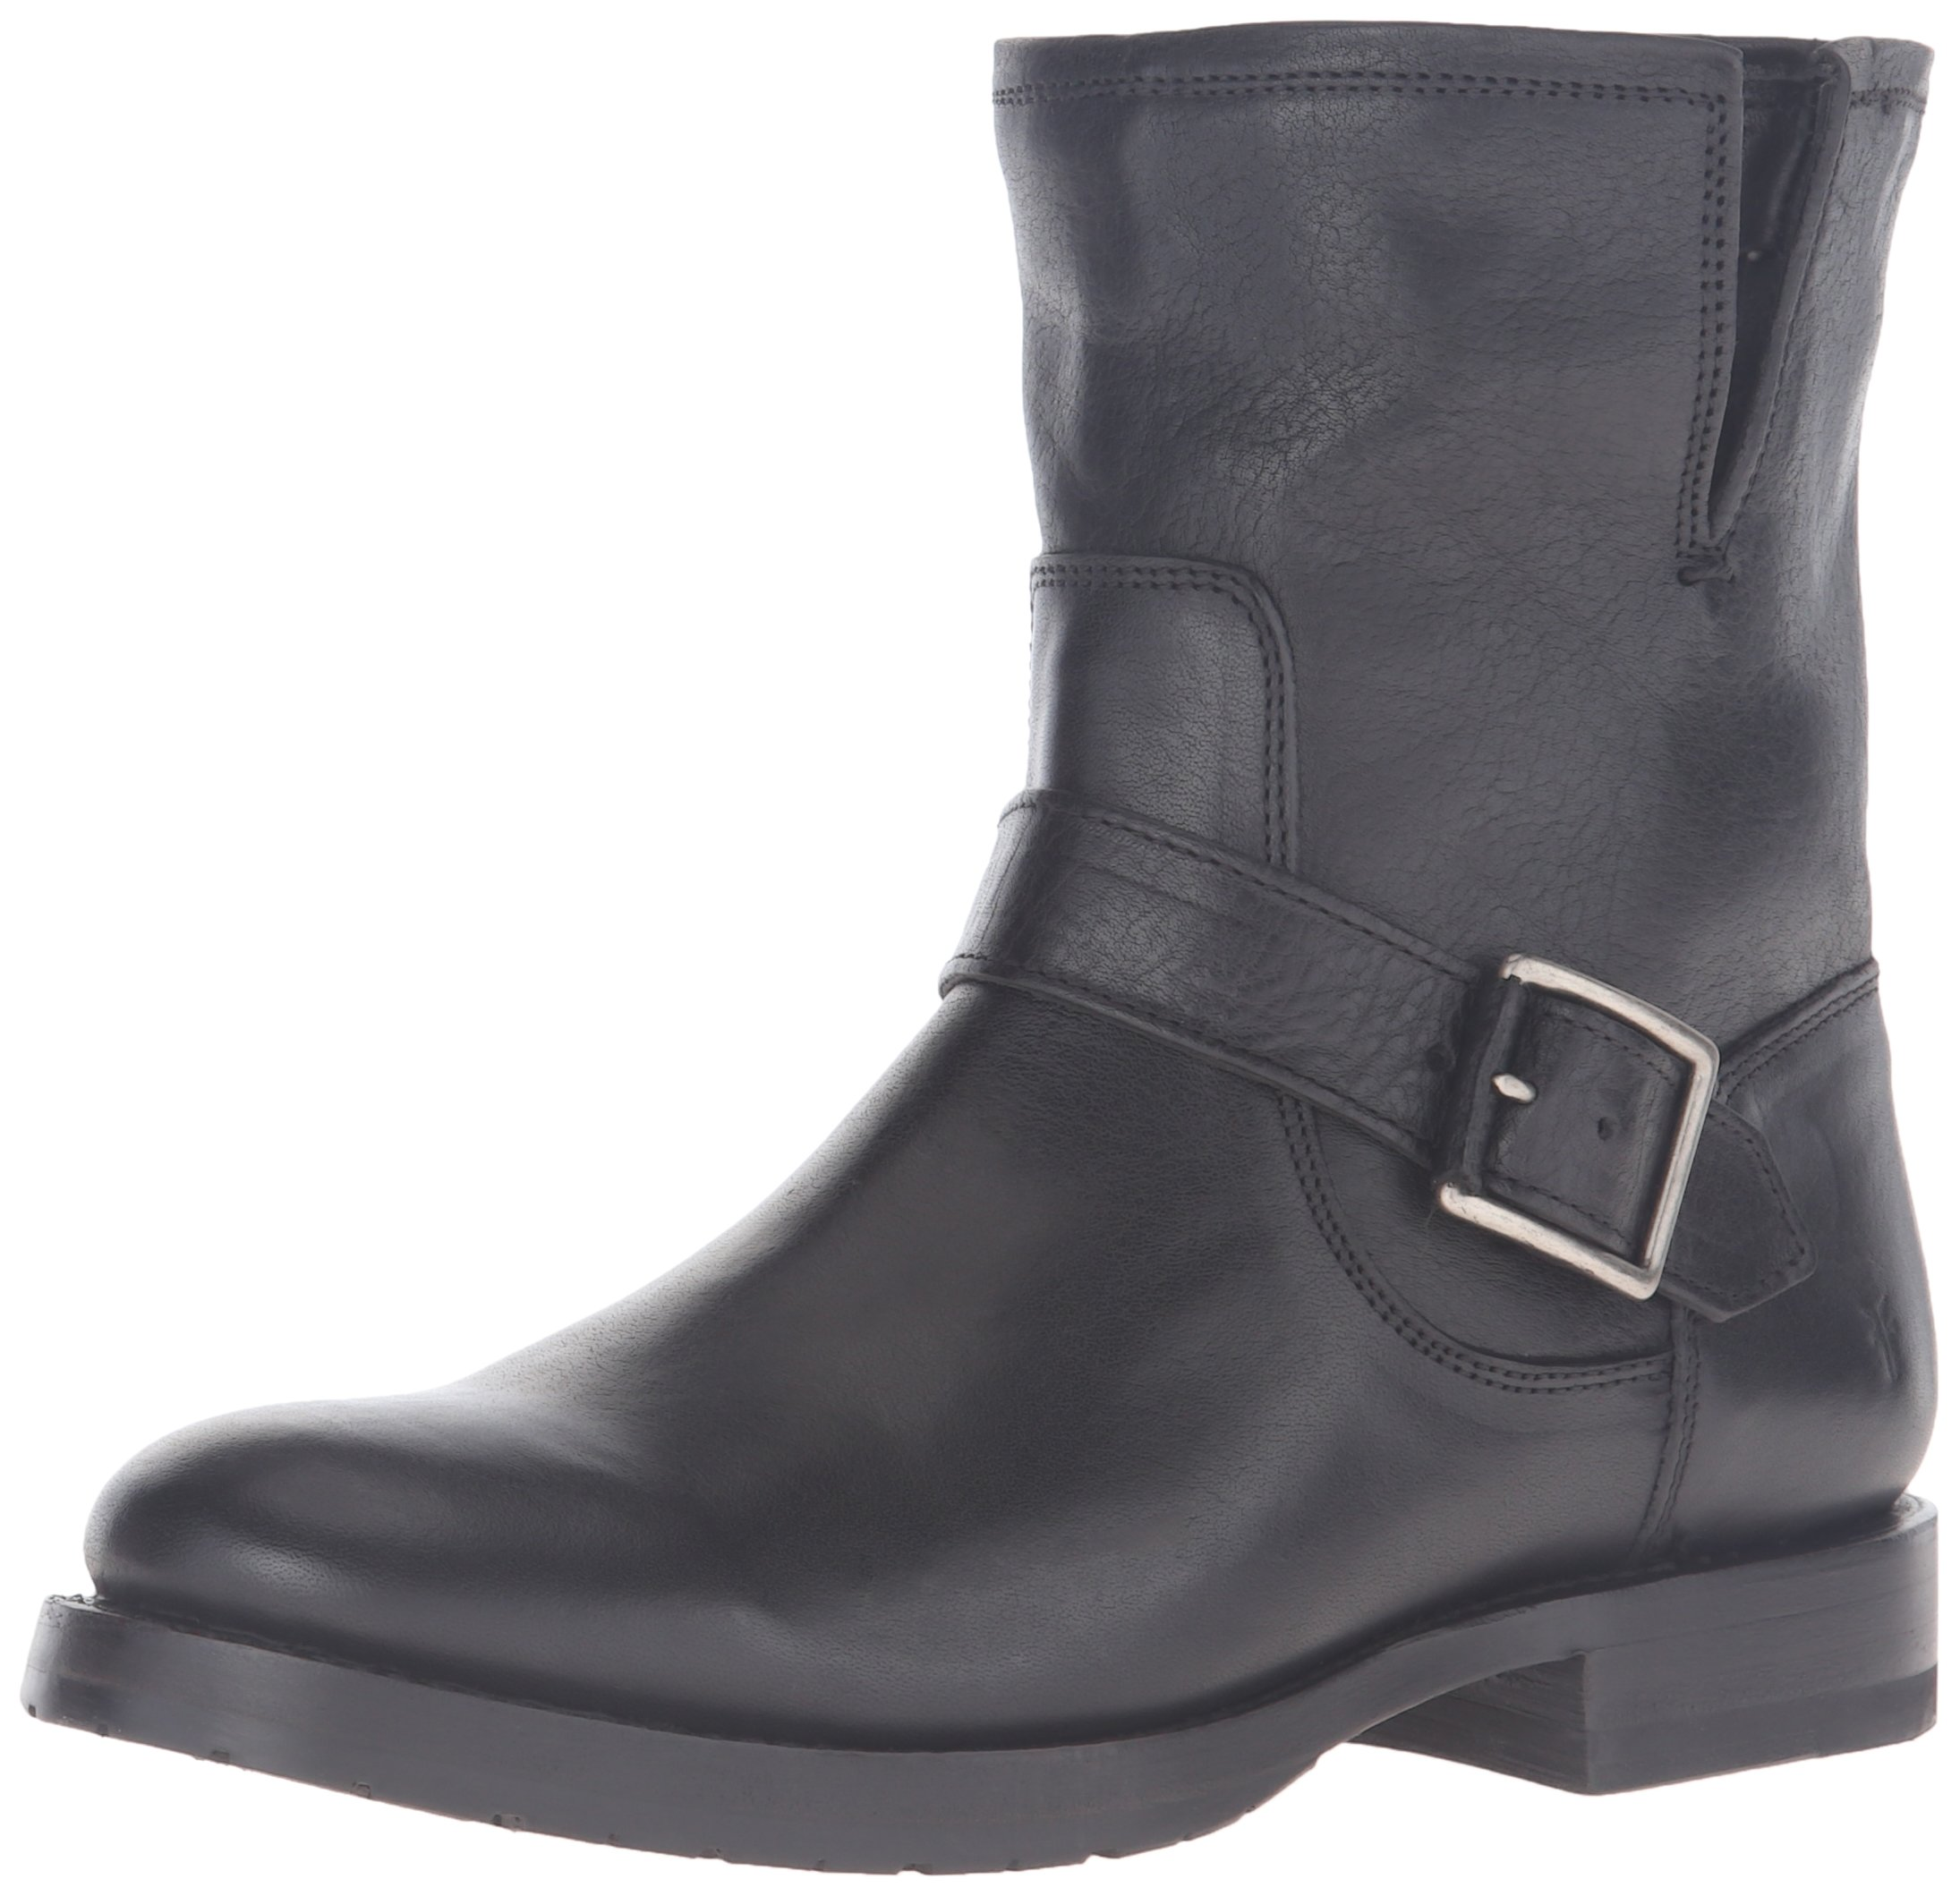 FRYE Women's Natalie Short Engineer Boot, Black, 8 M US